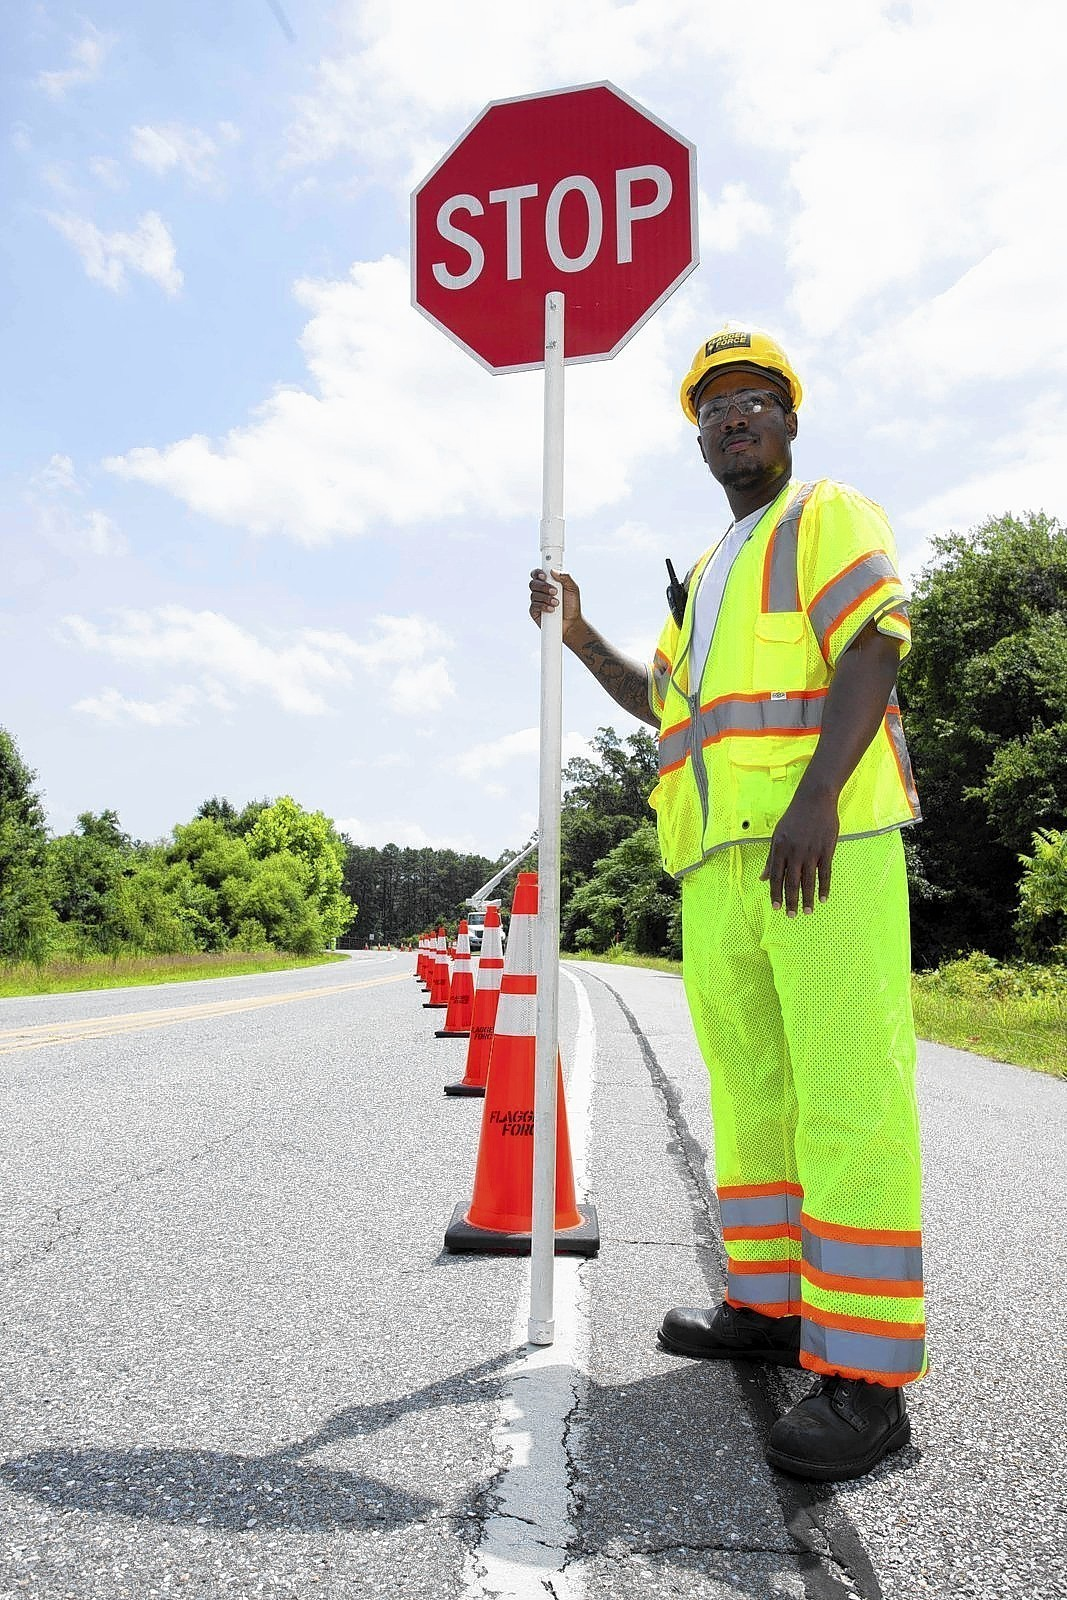 Construction Traffic Control : Flagger force construction zone safety company expands in